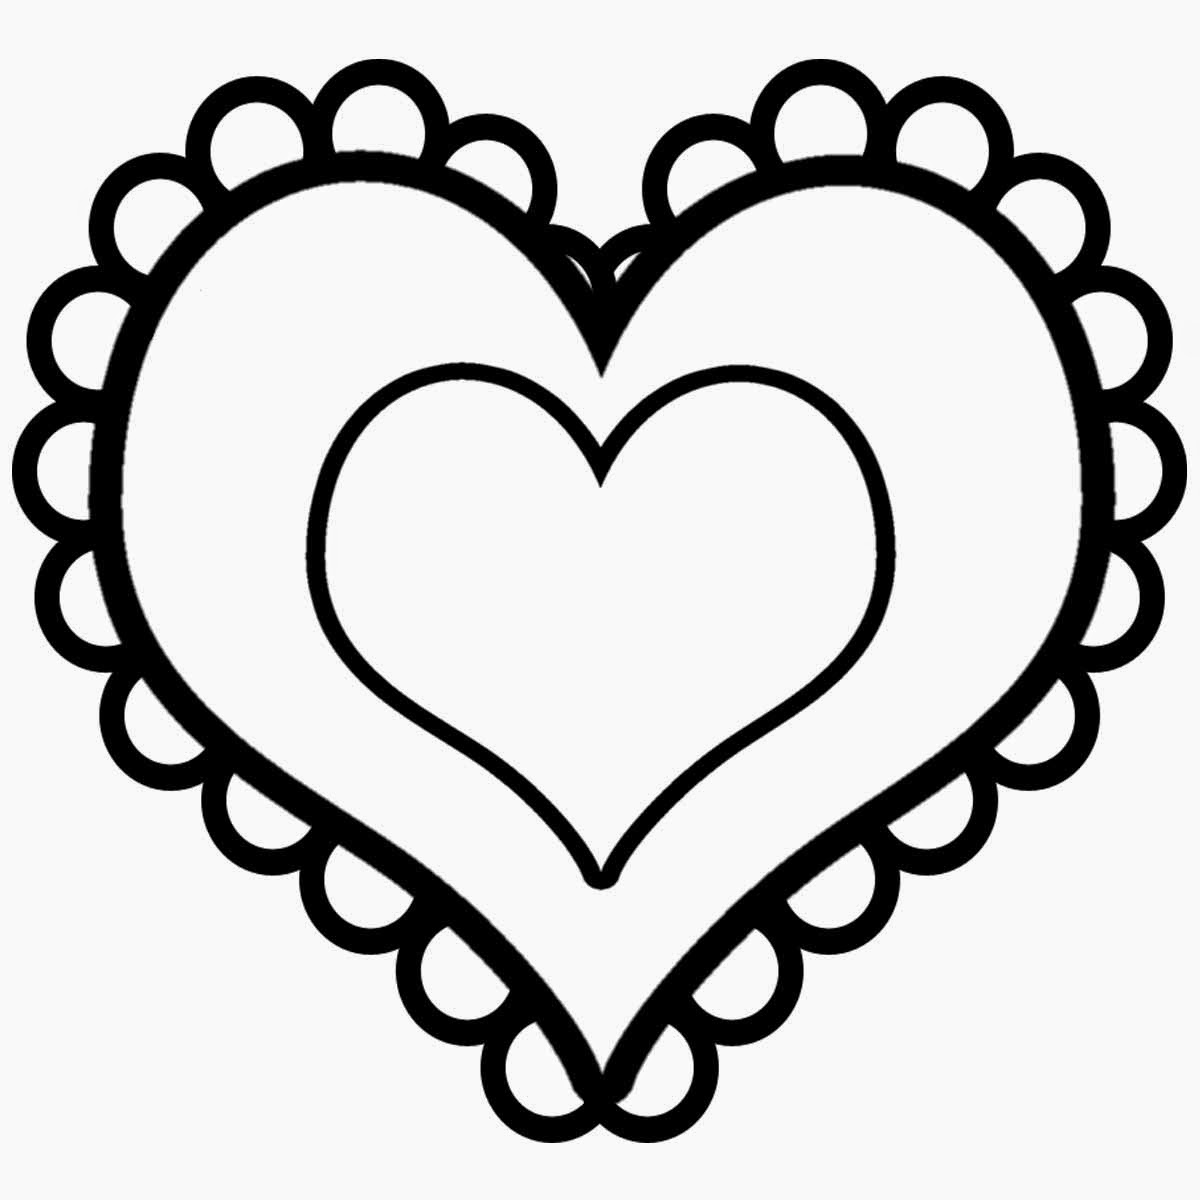 valentines day heart coloring pages valentine39s day heart coloring pages for kids printable free coloring valentines pages heart day